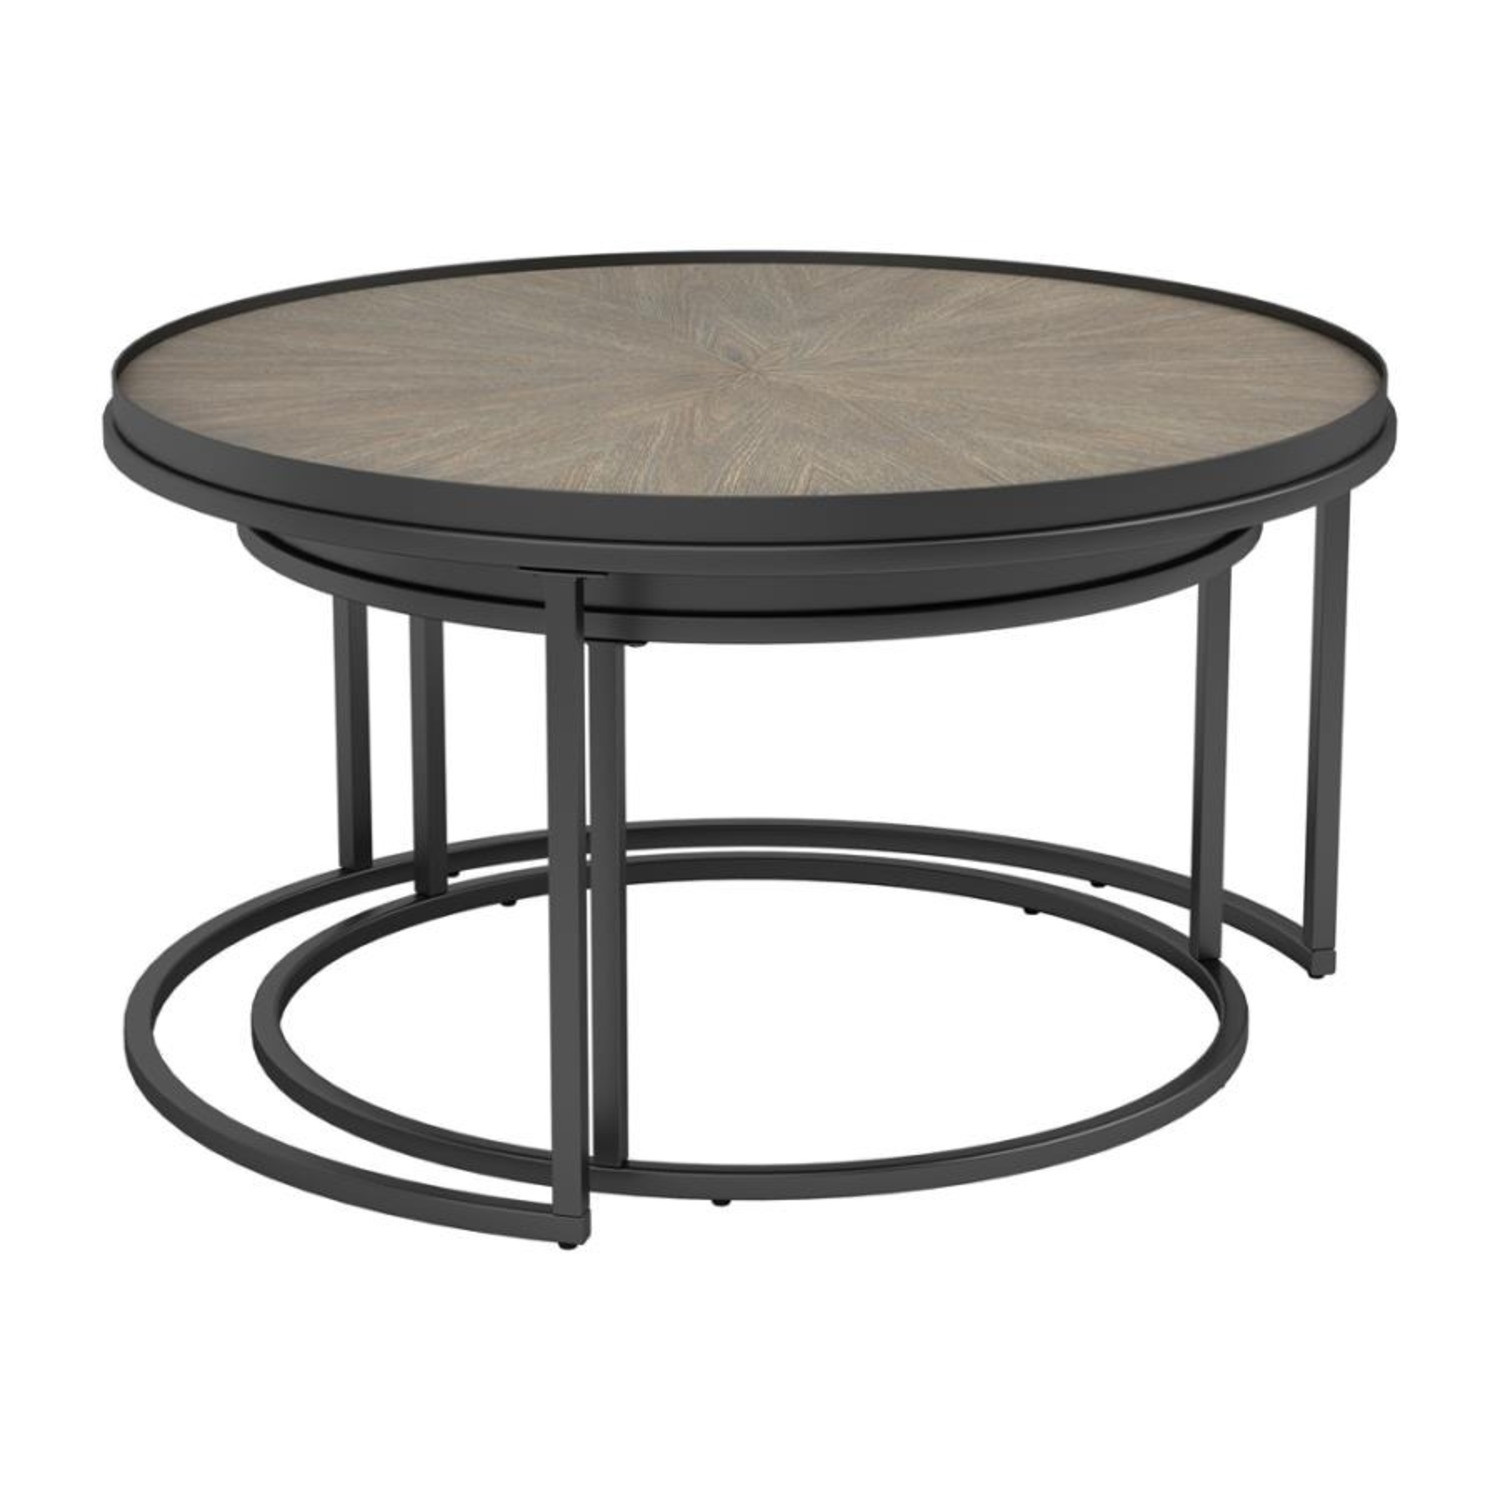 2-Piece Nesting Table In Weathered Elm Finish - image-1